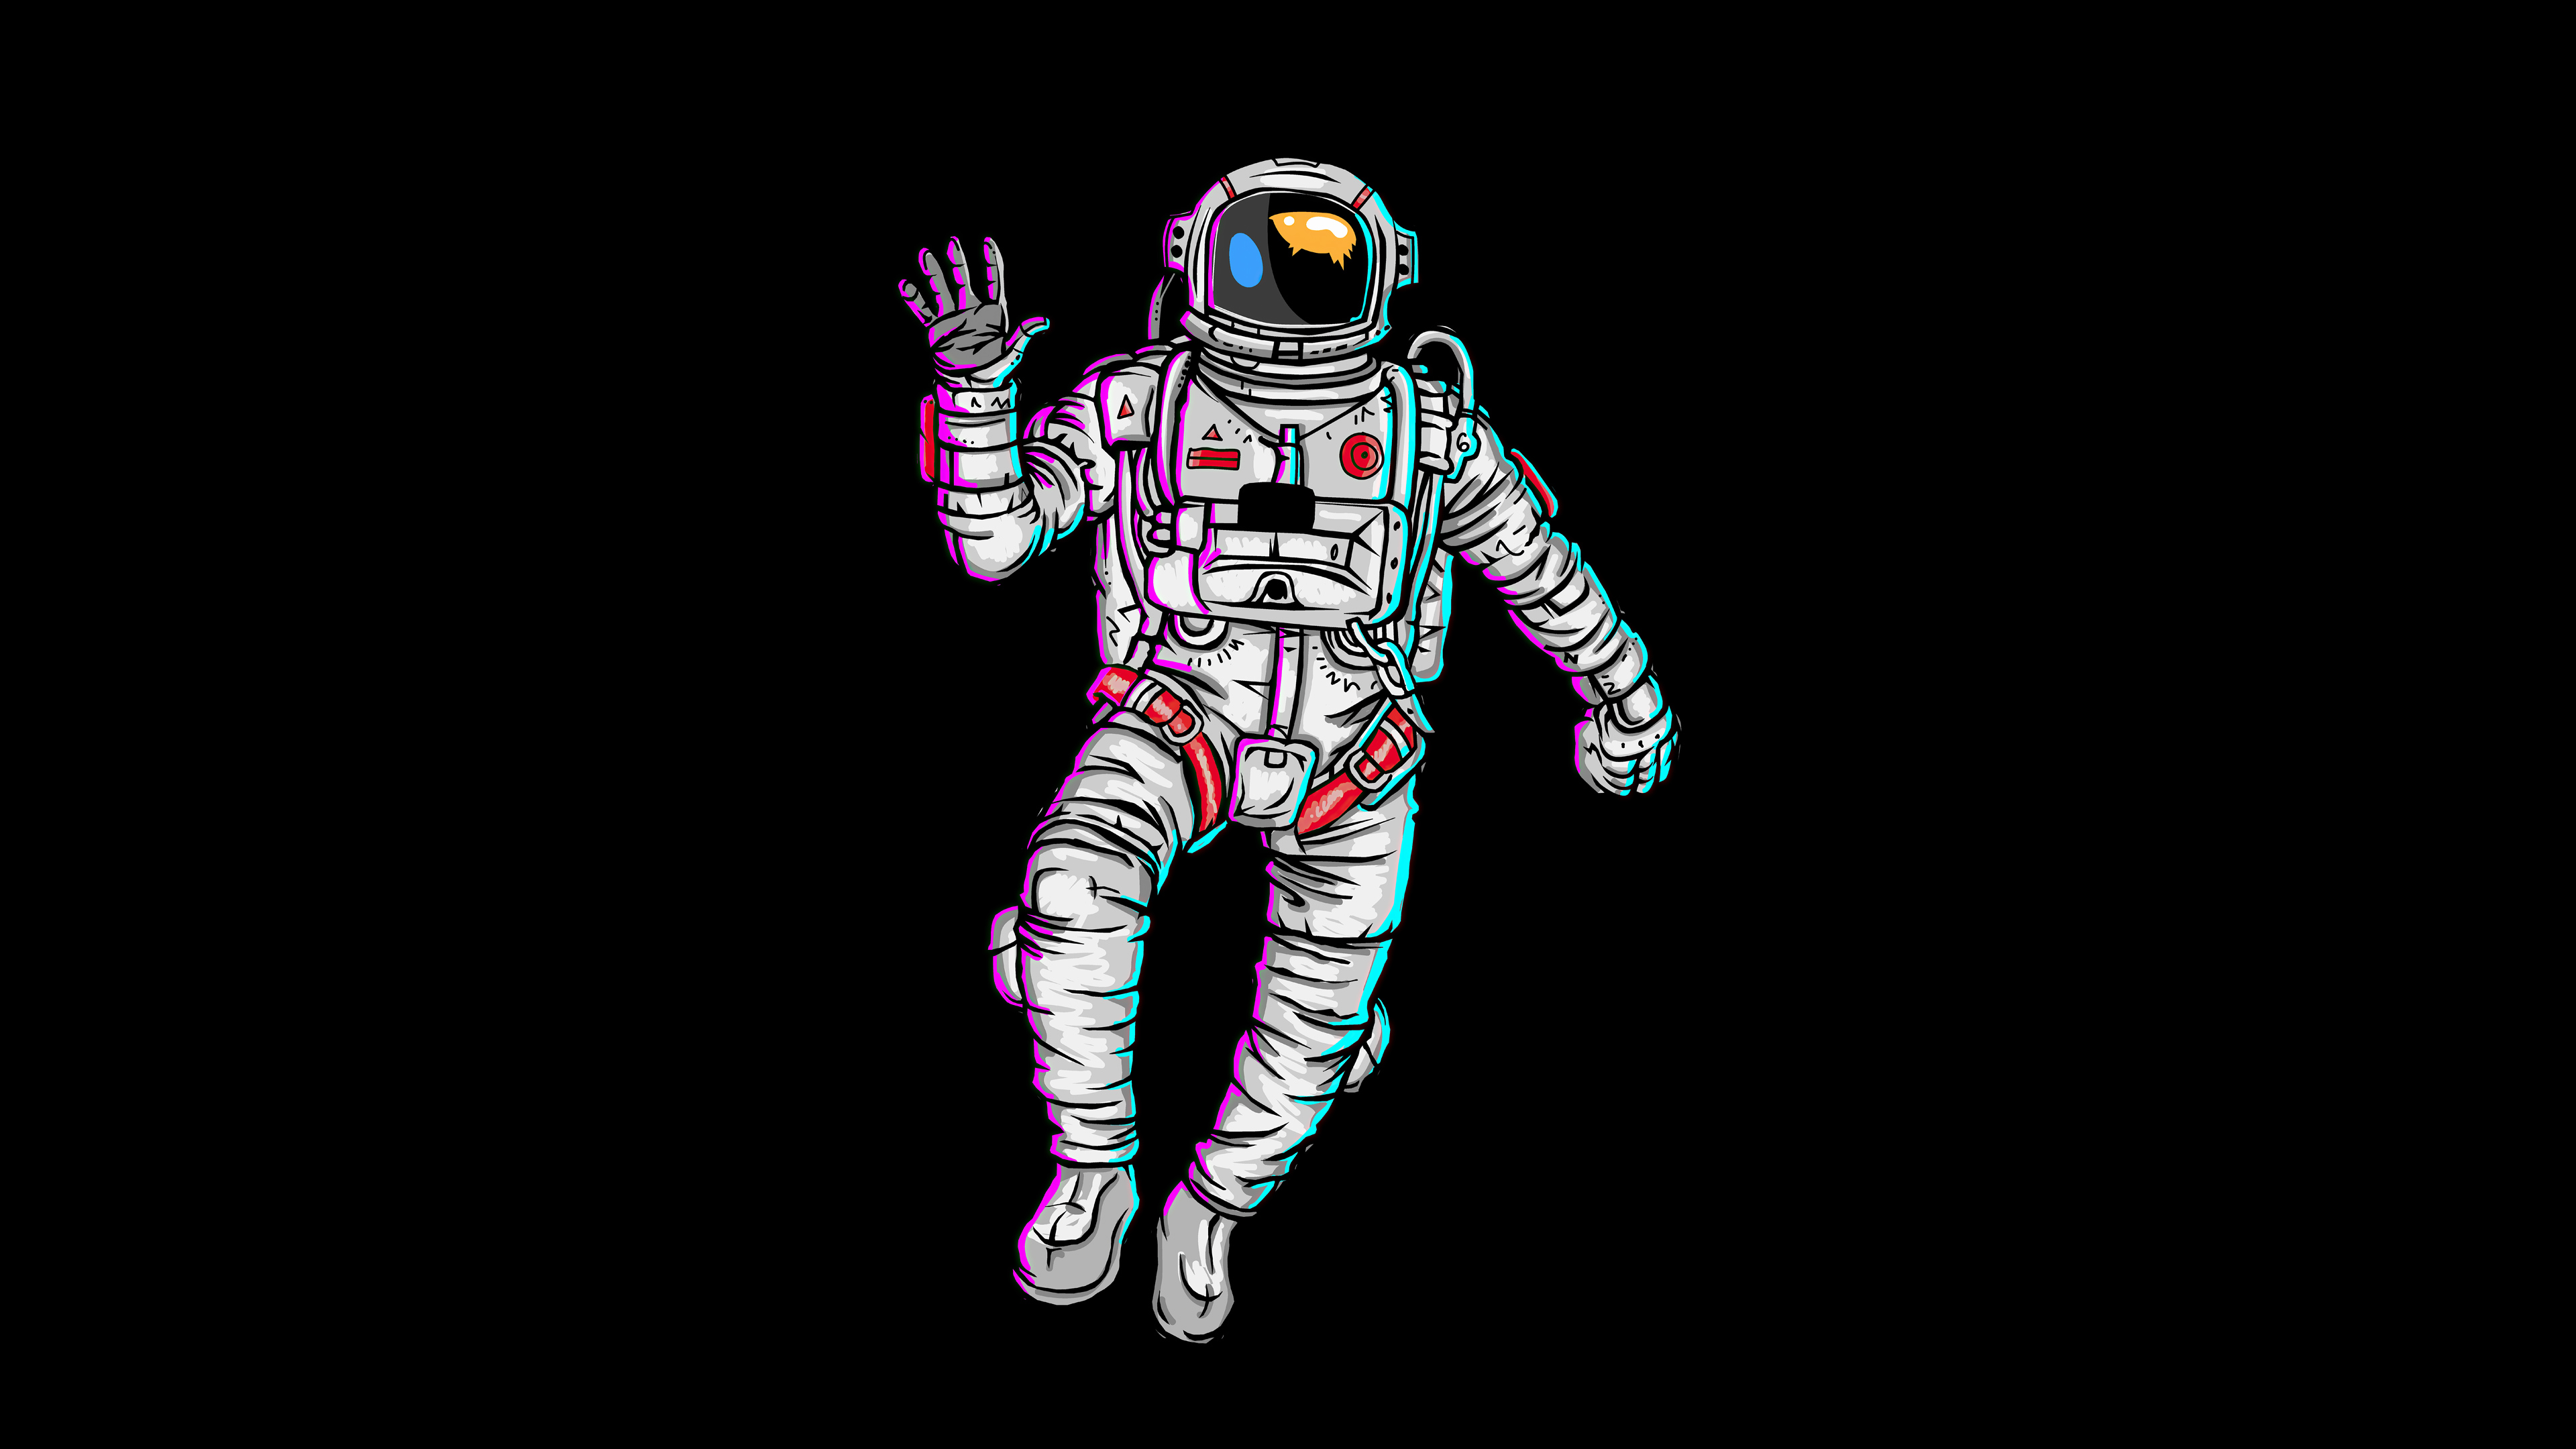 Astronaut Waving Hand Minimal 4k Hd Artist 4k Wallpapers Images Backgrounds Photos And Pictures